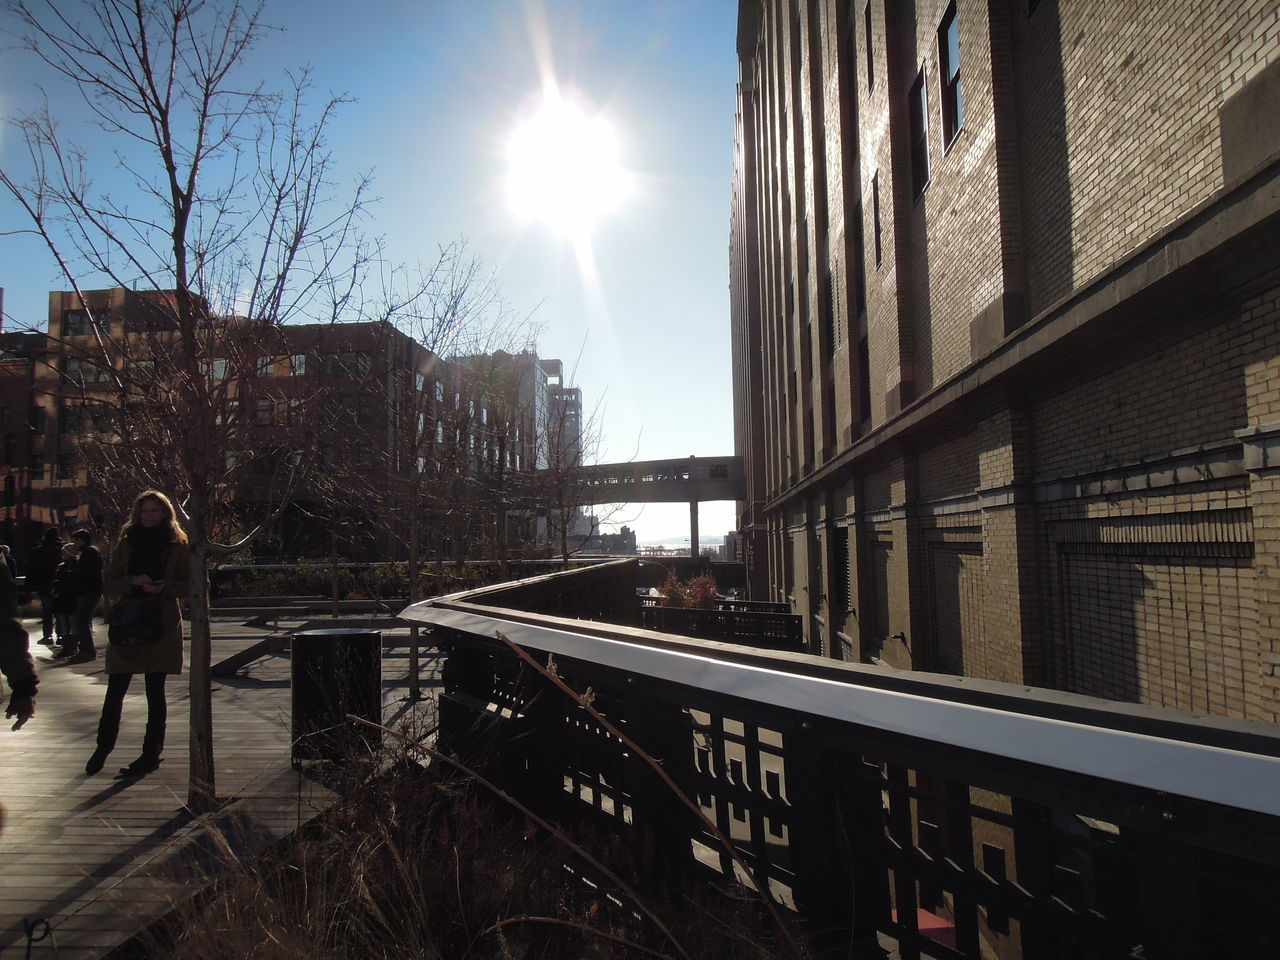 architecture, sunlight, sun, built structure, real people, sunbeam, building exterior, sky, railing, one person, full length, day, outdoors, women, lifestyles, standing, men, tree, city, nature, people